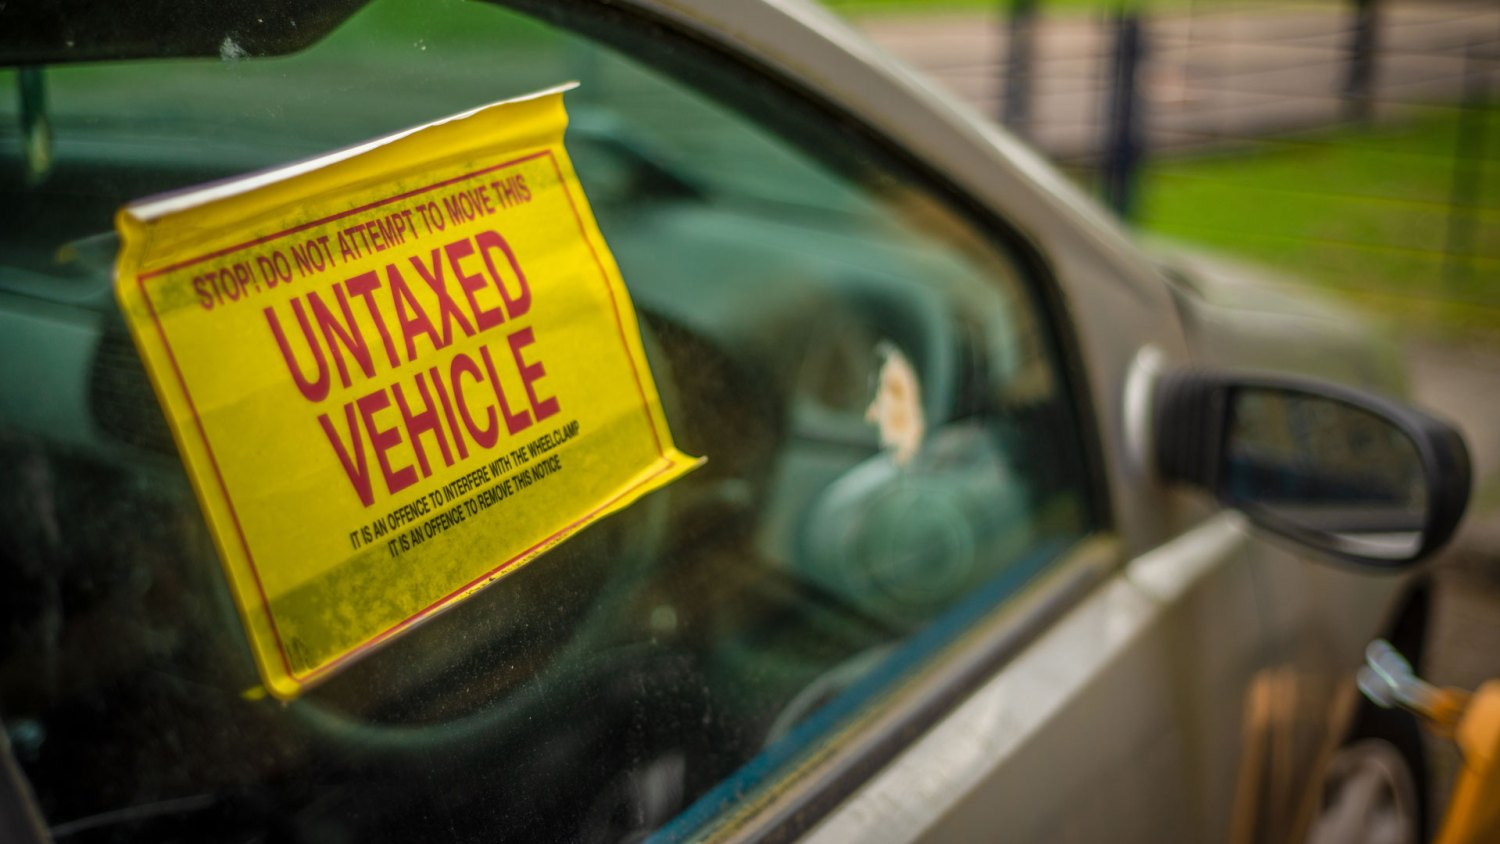 Untaxed vehicle warning